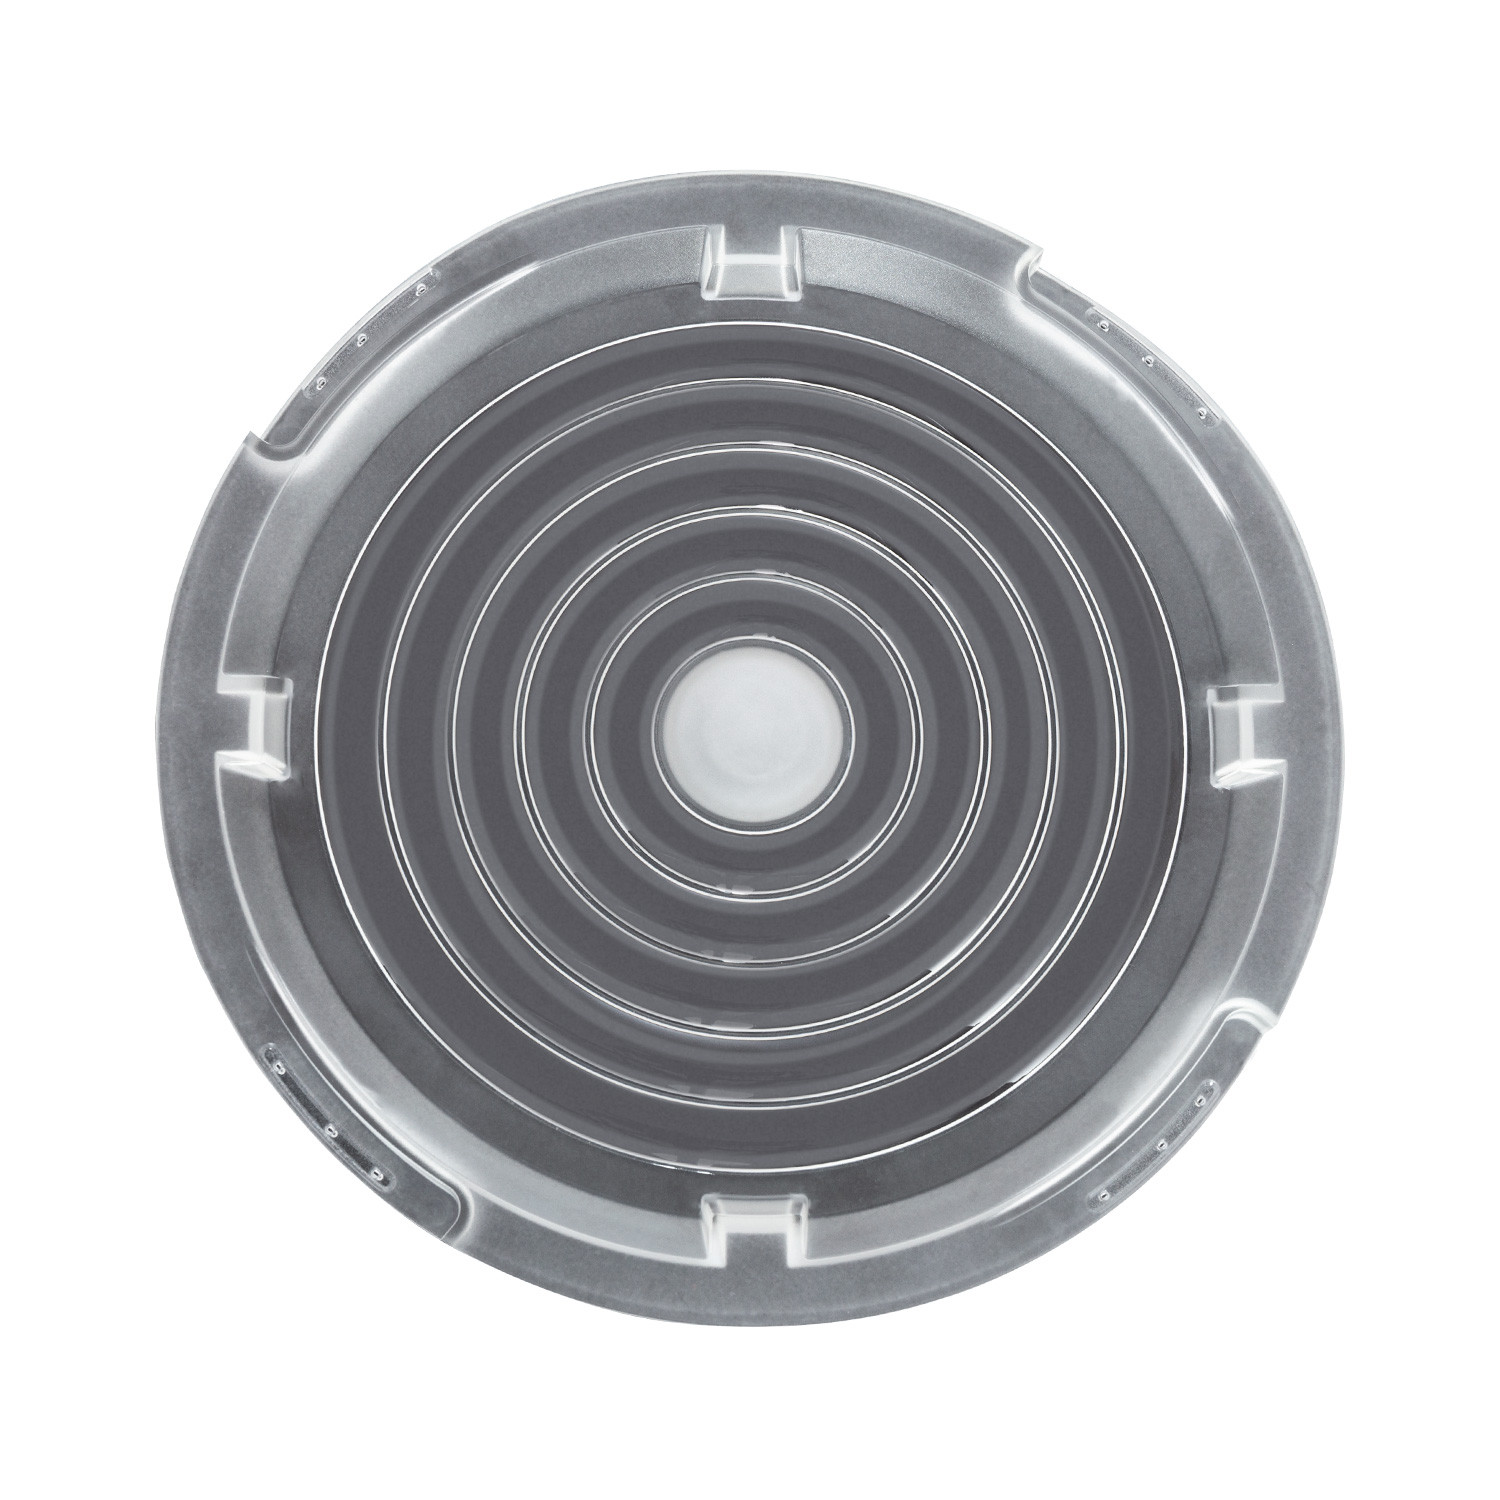 Optica 120º para Campana LED Samsung UFO (Optica 3 en 1)